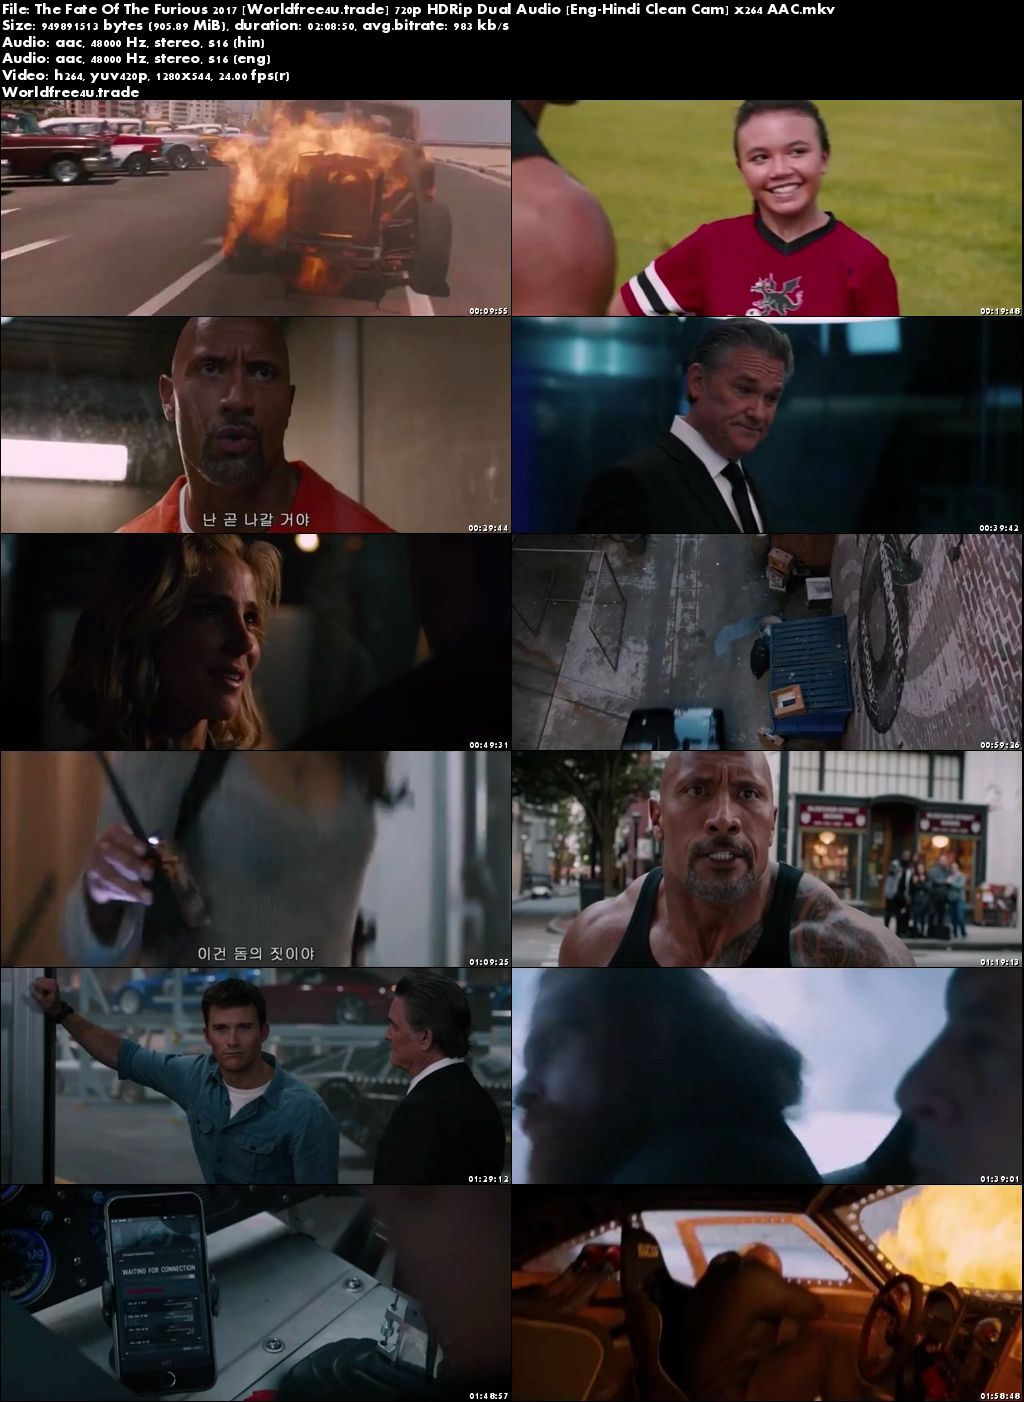 Download Fast And Furious 8 Full Movie Download In Hindi Dubbed 480P Filmywap Background